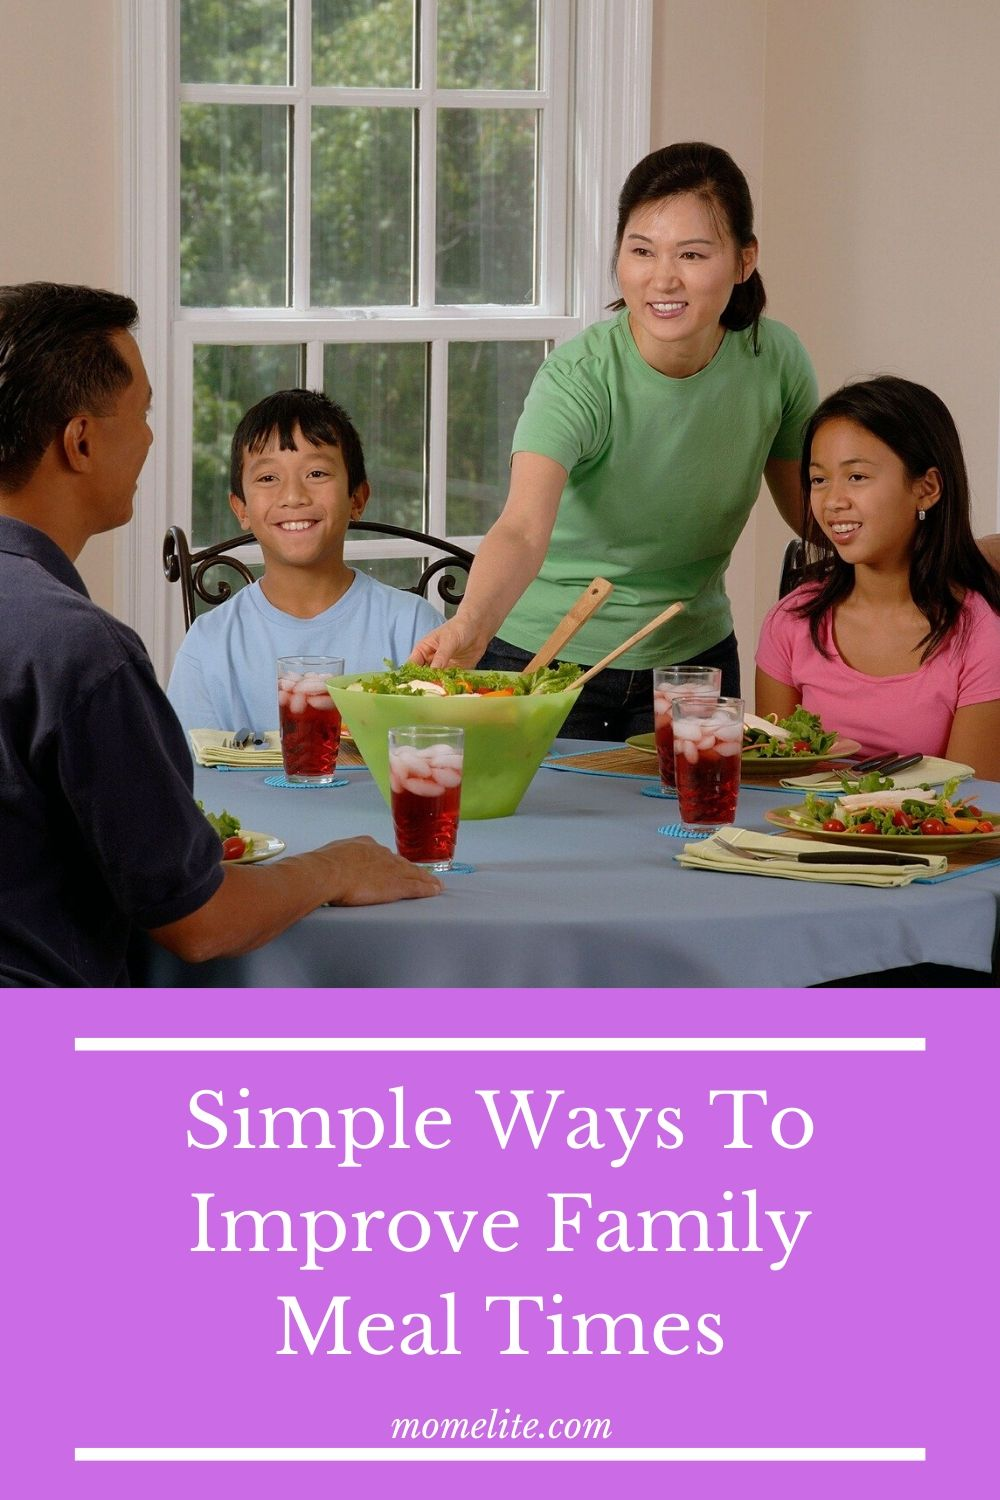 Simple Ways To Improve Family Meal Times